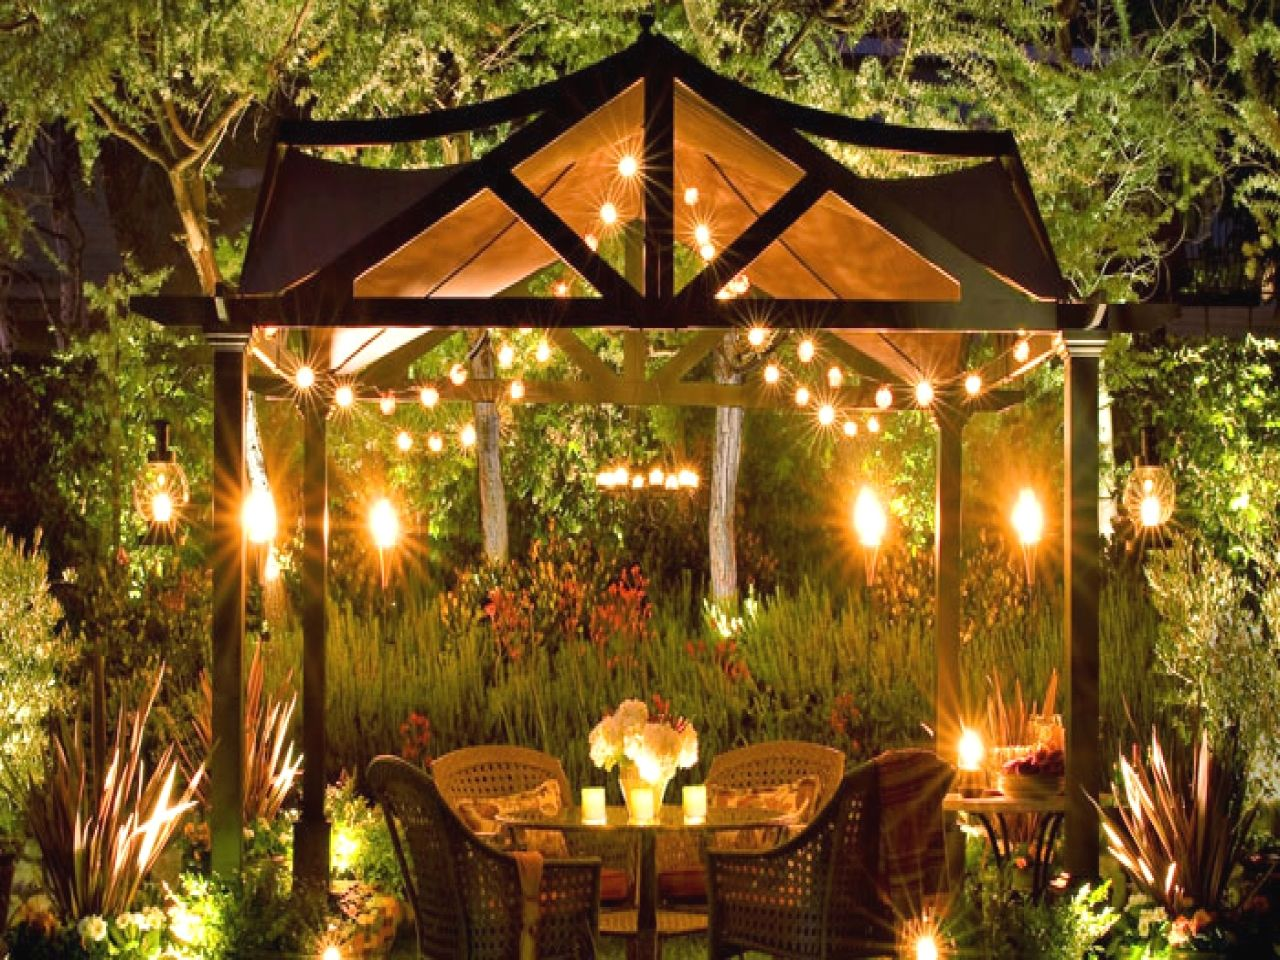 Easy Diy Patio Lighting Projects You Can Create Yourself To Accent Your Decks Overhead Patio Outdoor Lighting Design Backyard Lighting Backyard Lighting Diy